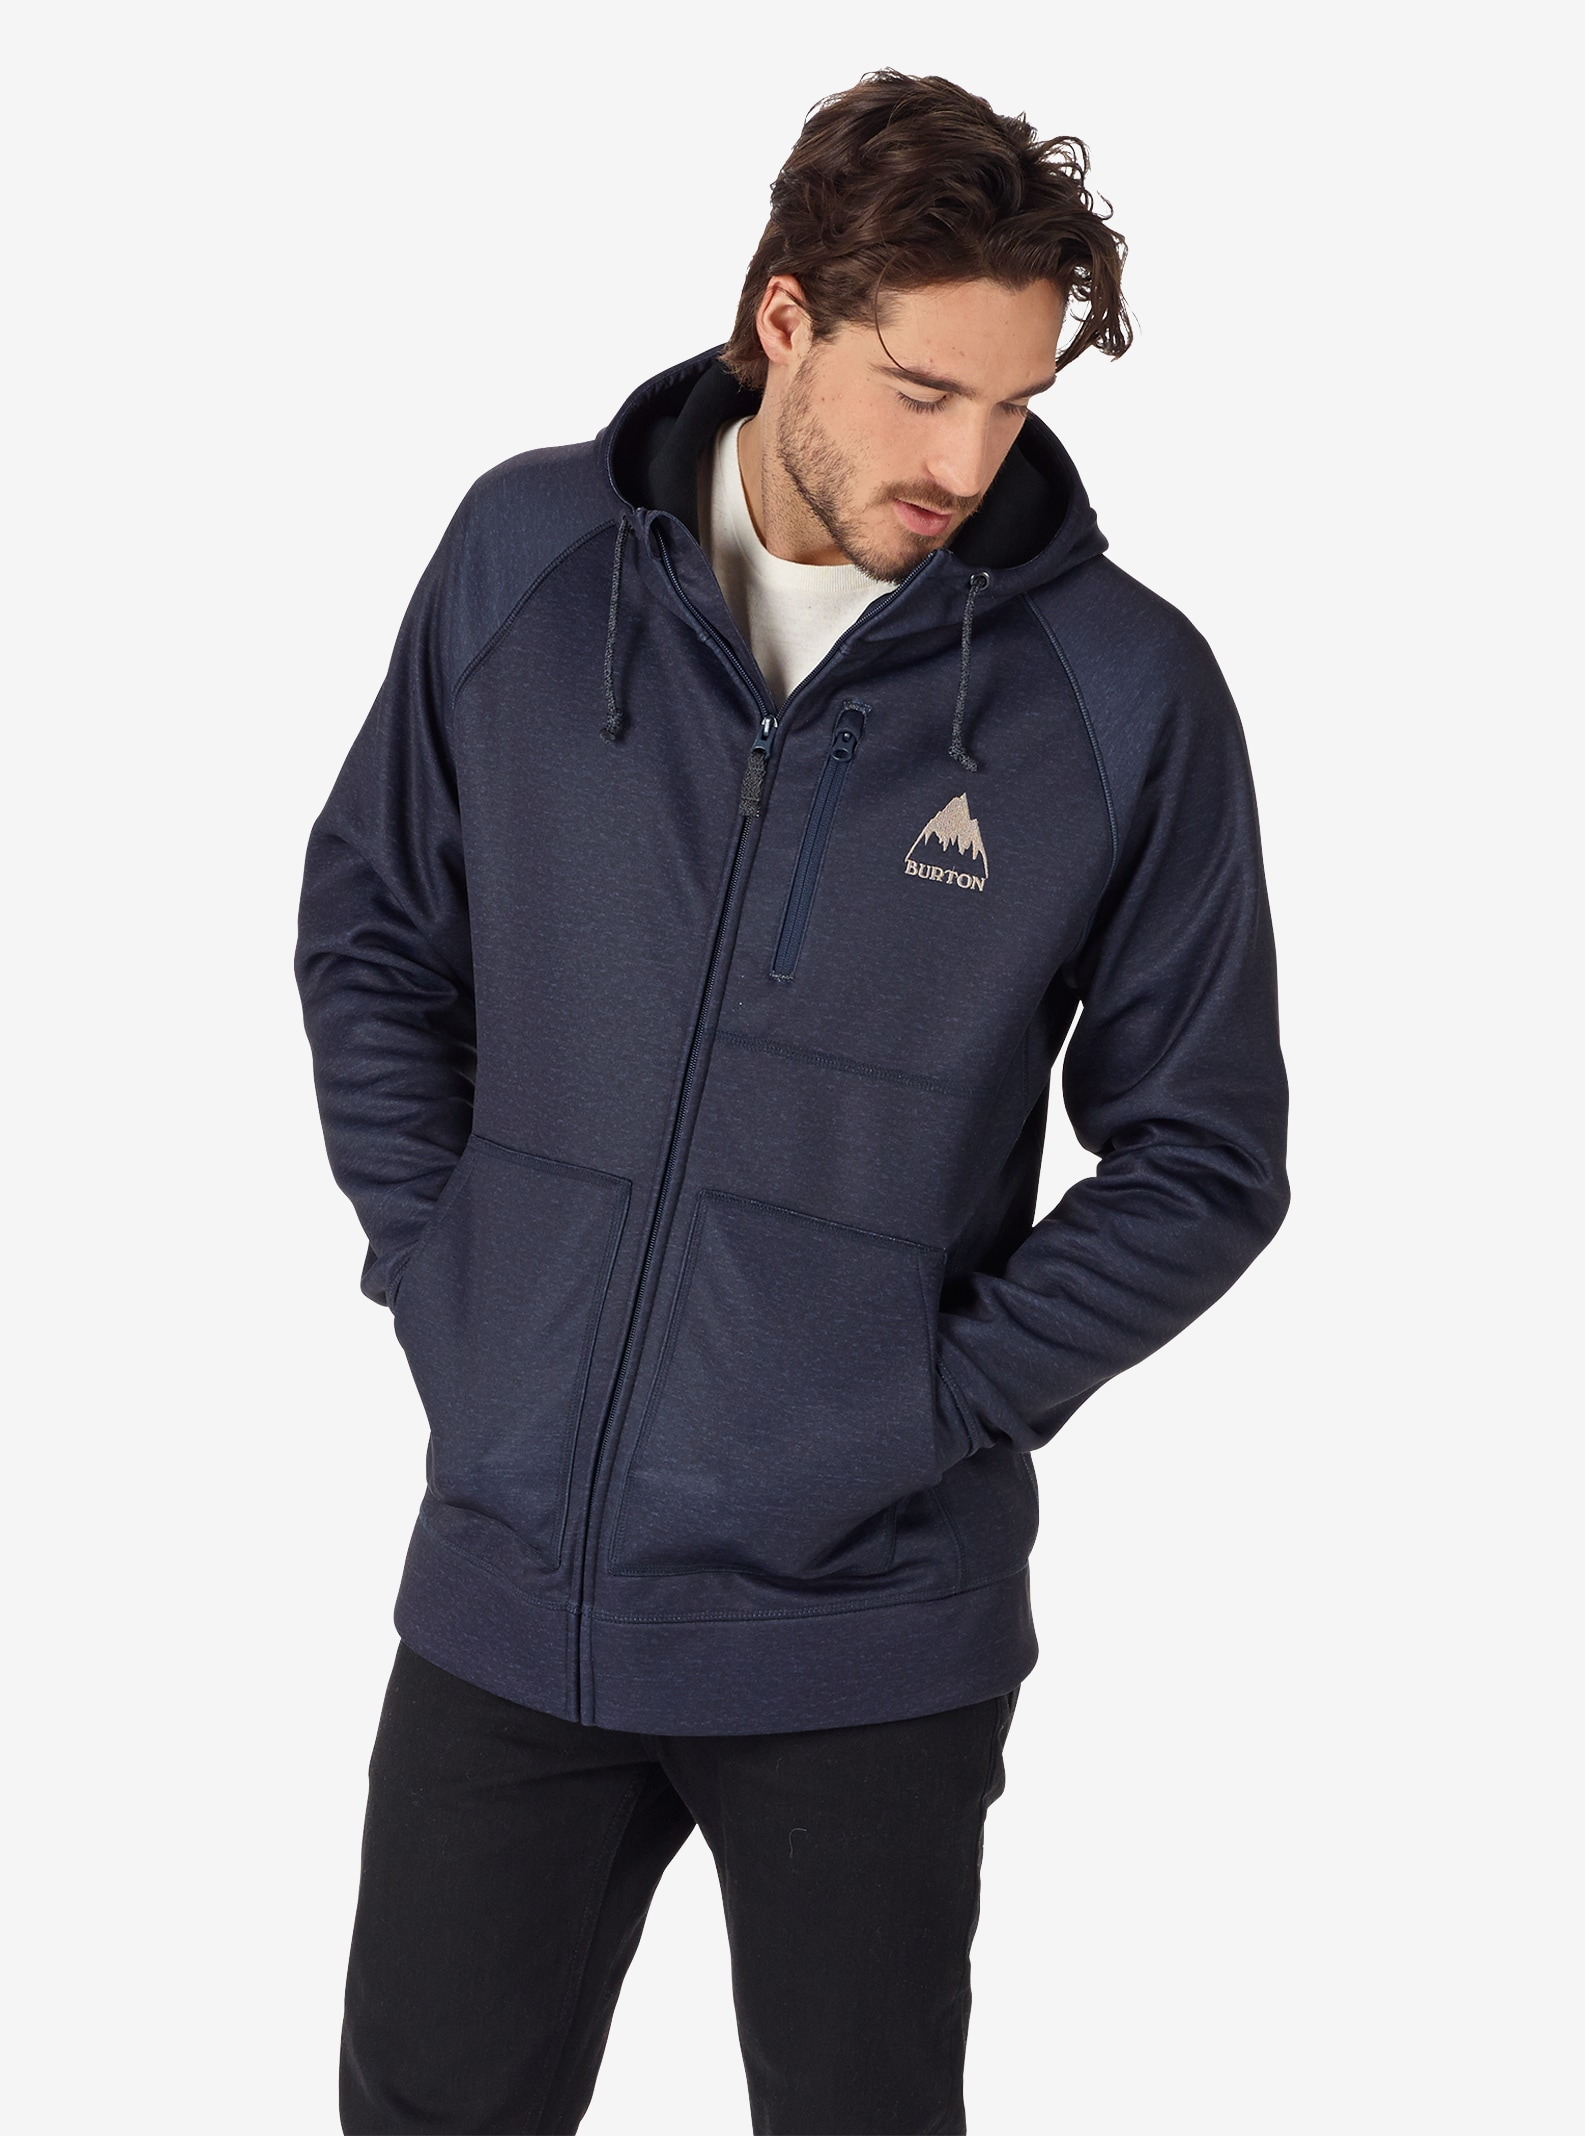 Men's Burton Bonded Full-Zip Hoodie angezeigt in Mood Indigo Heather